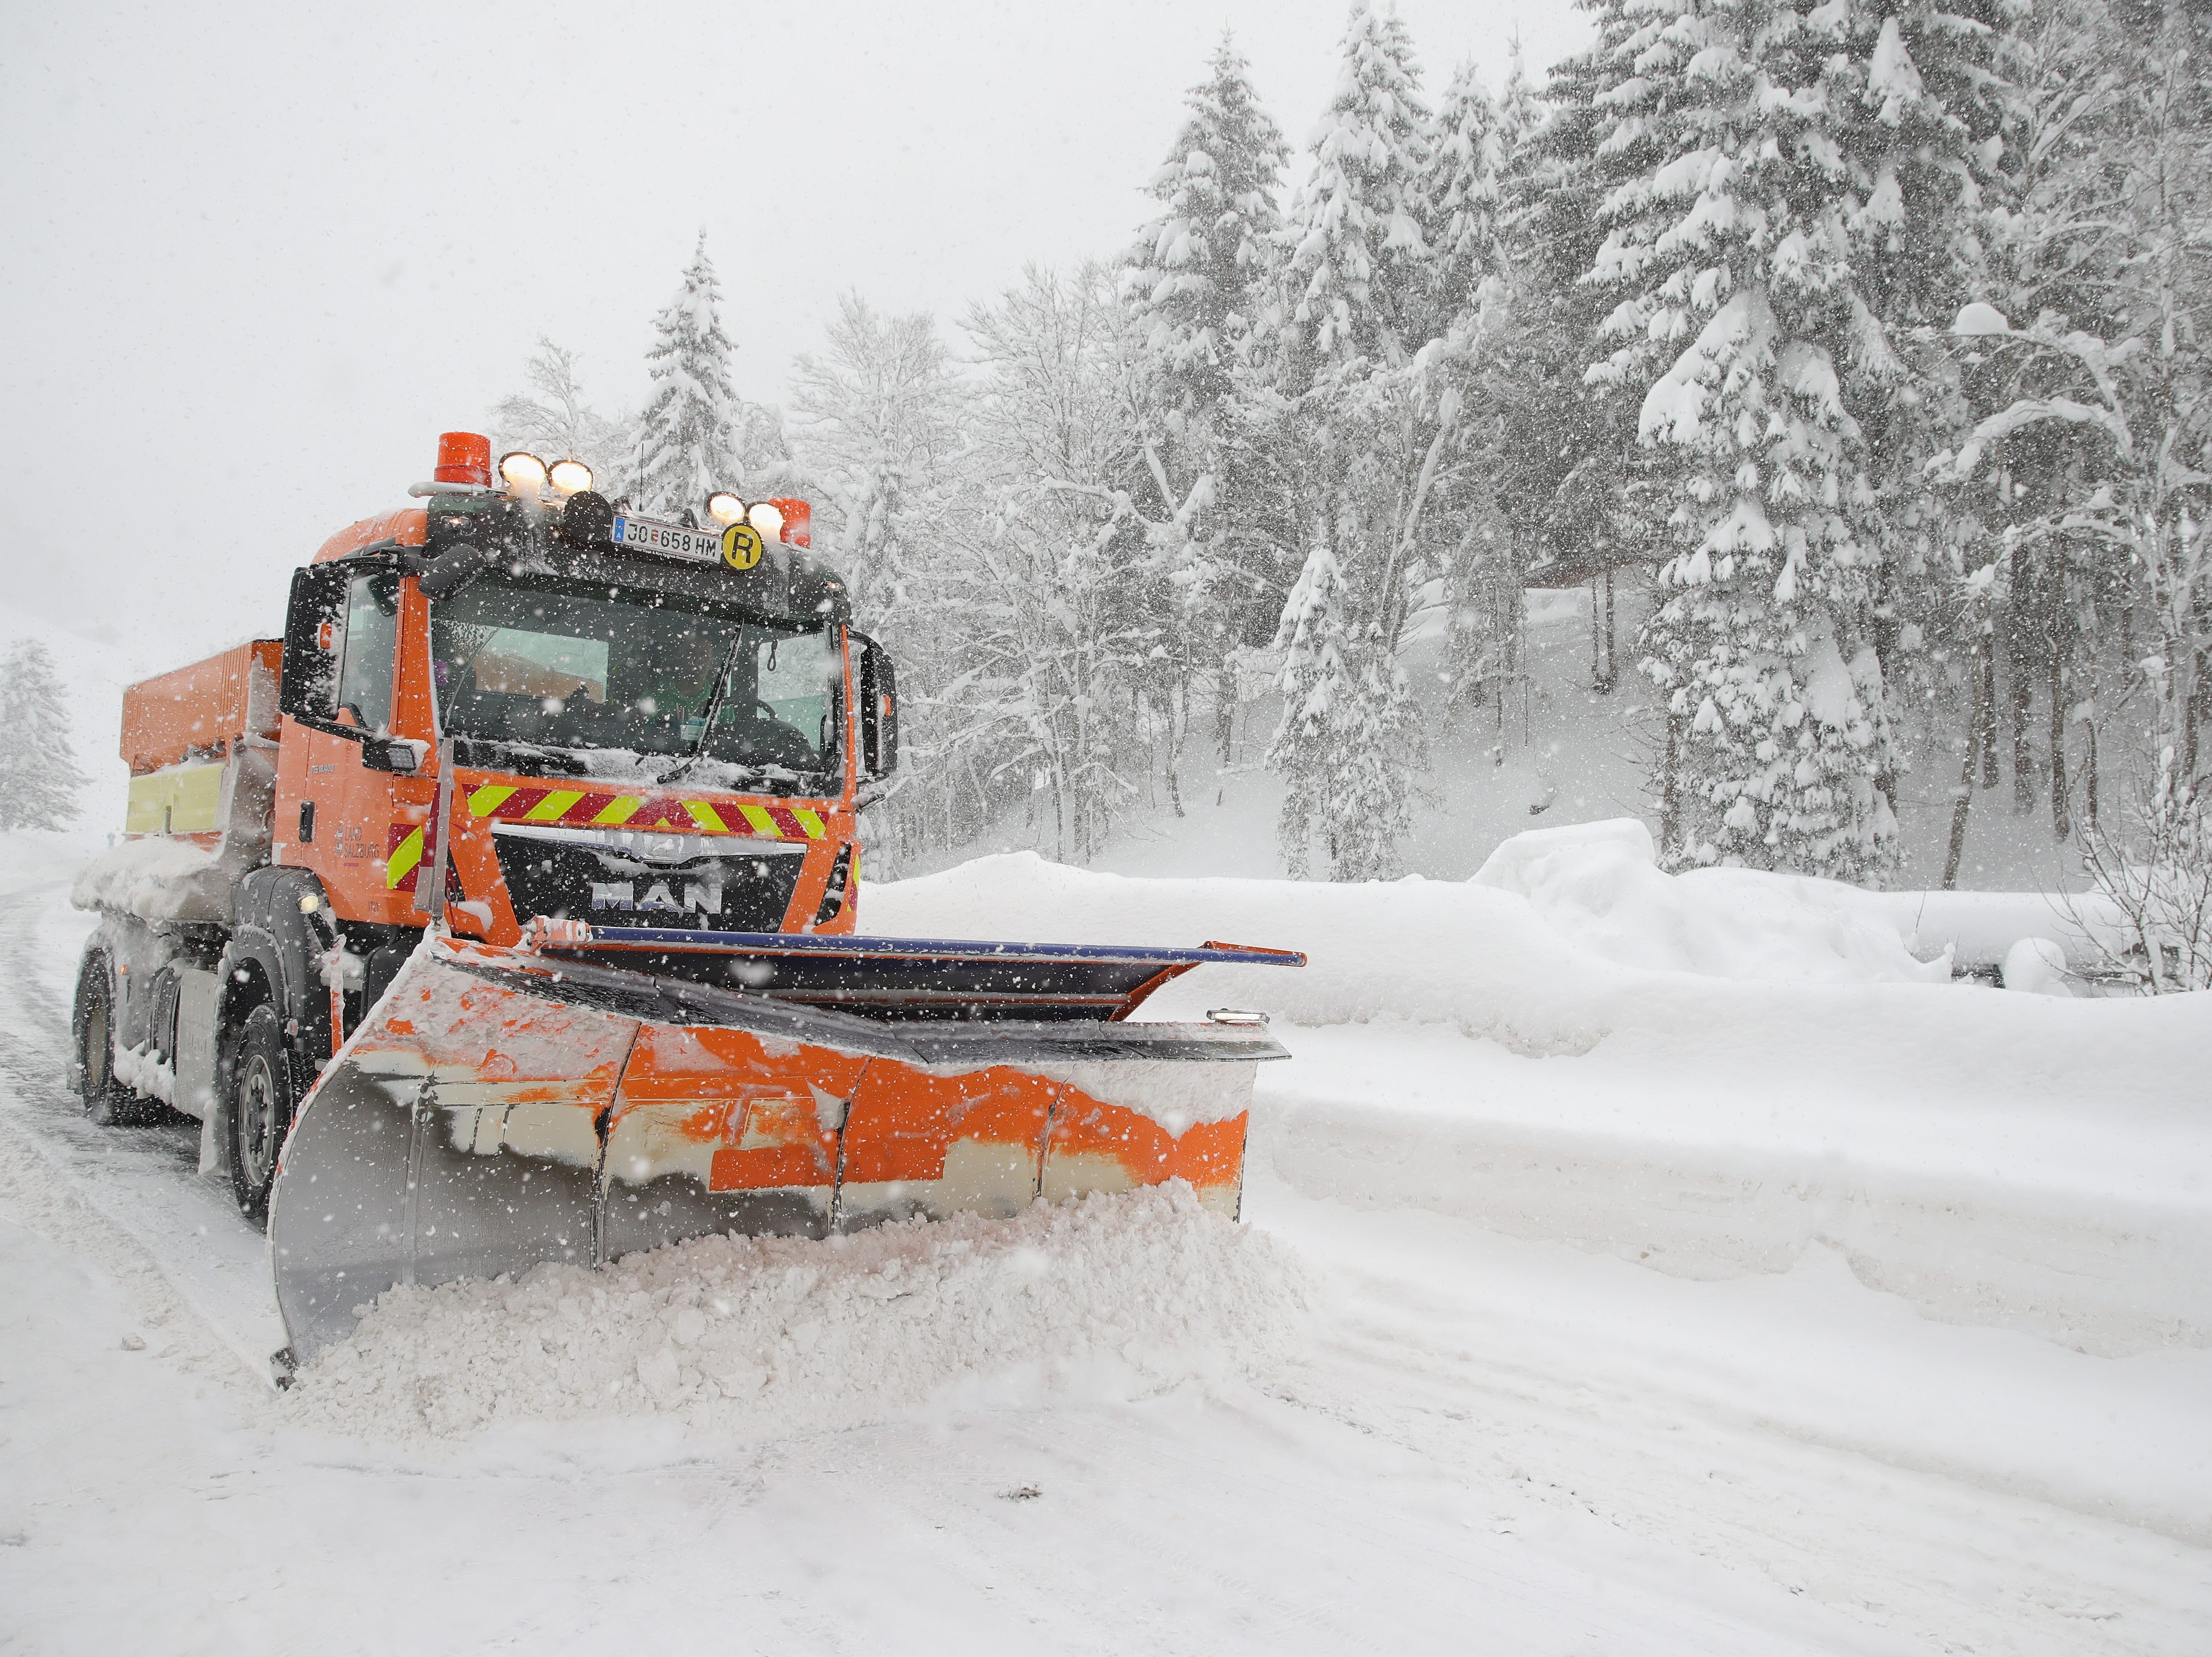 A snow plow cleans the main road out of a valley that was blocked after heavy snow falls on Jan. 5, 2019 in Filzmoos, Austria. Filzmoos is a town within the district of St. Johann im Pongau in the state of Salzburg next to the Dachstein mountain.